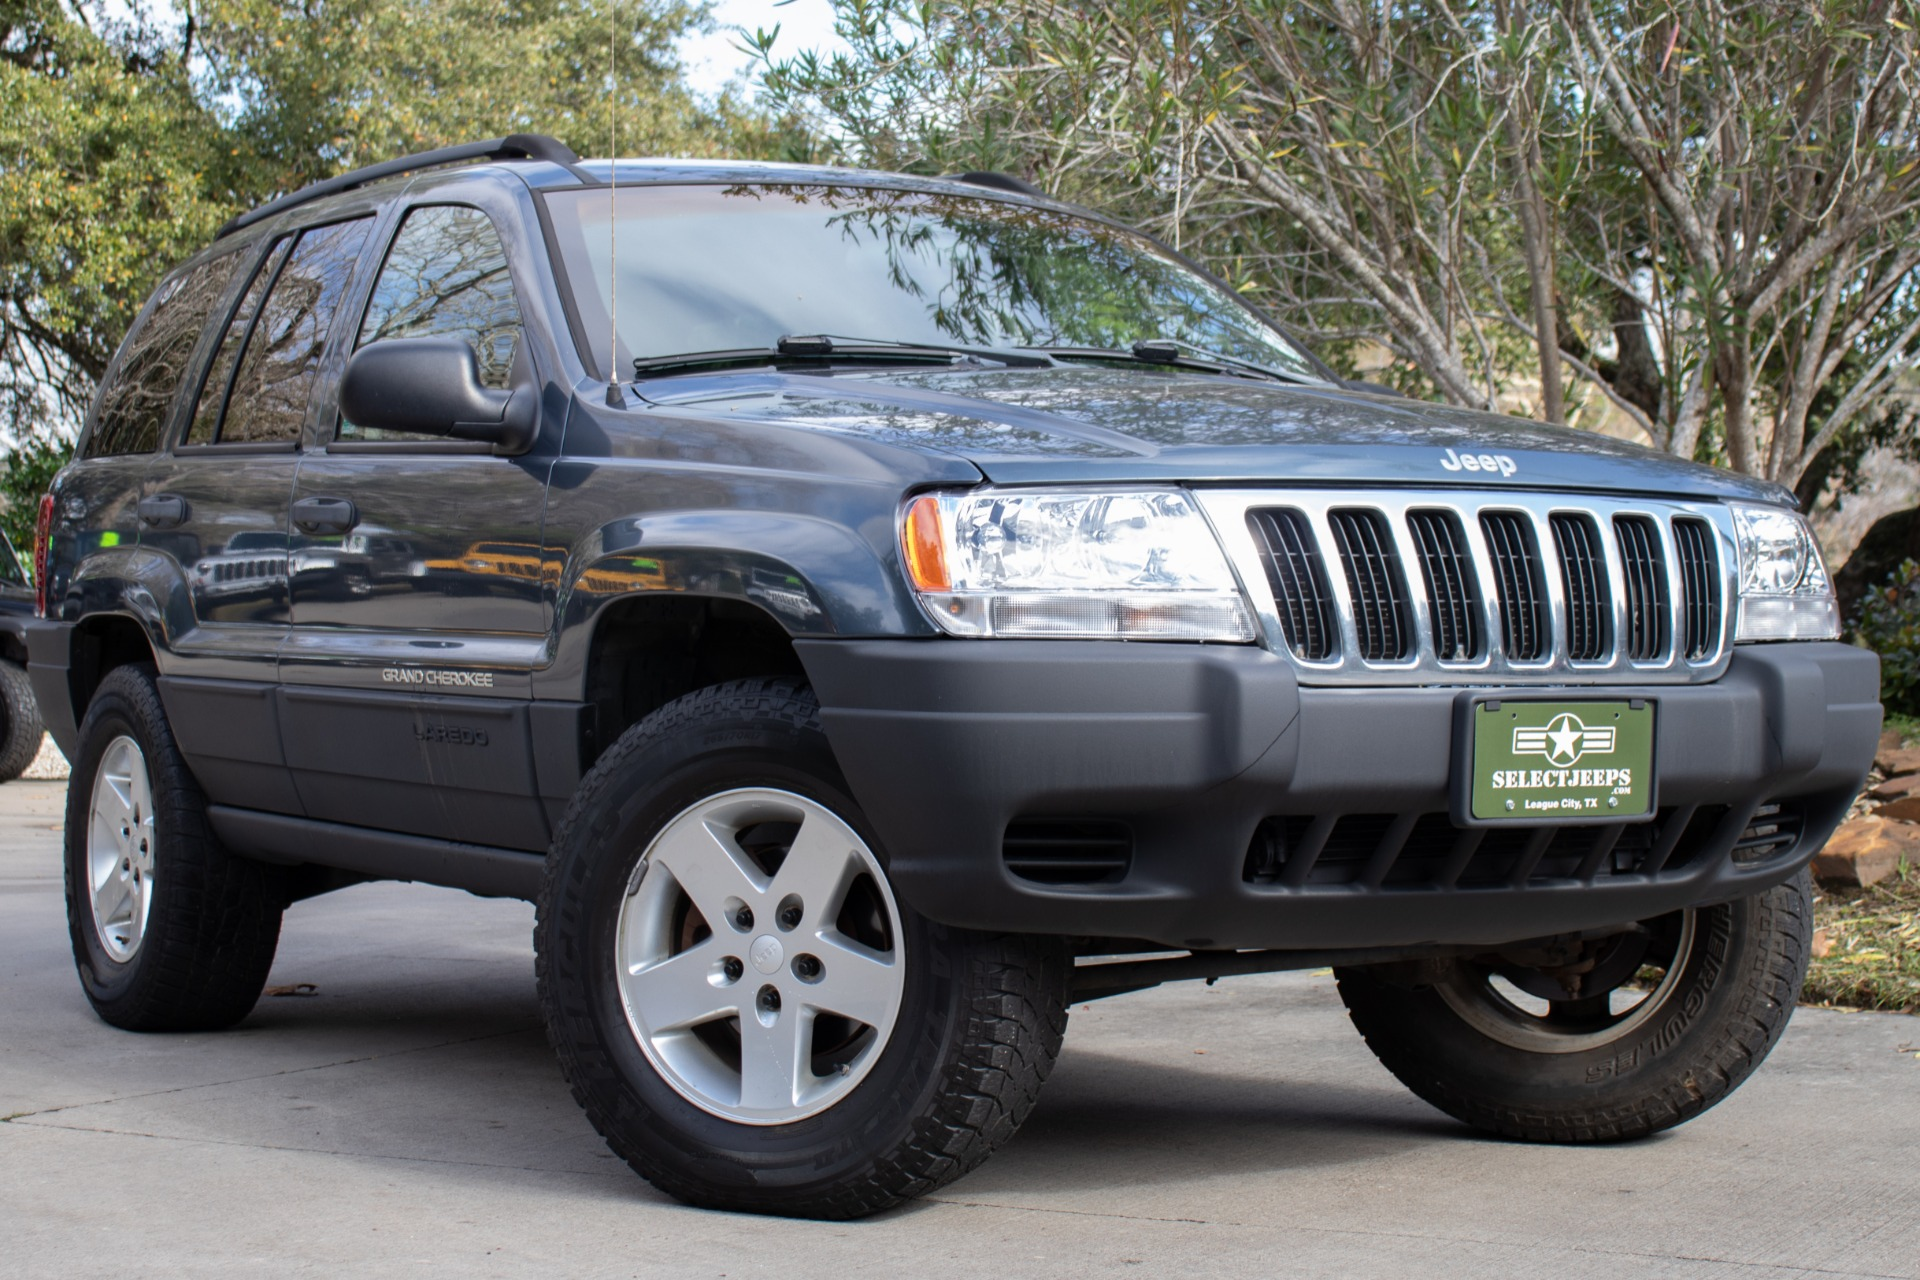 used 2002 jeep grand cherokee laredo for sale 6 995 select jeeps inc stock 271536 used 2002 jeep grand cherokee laredo